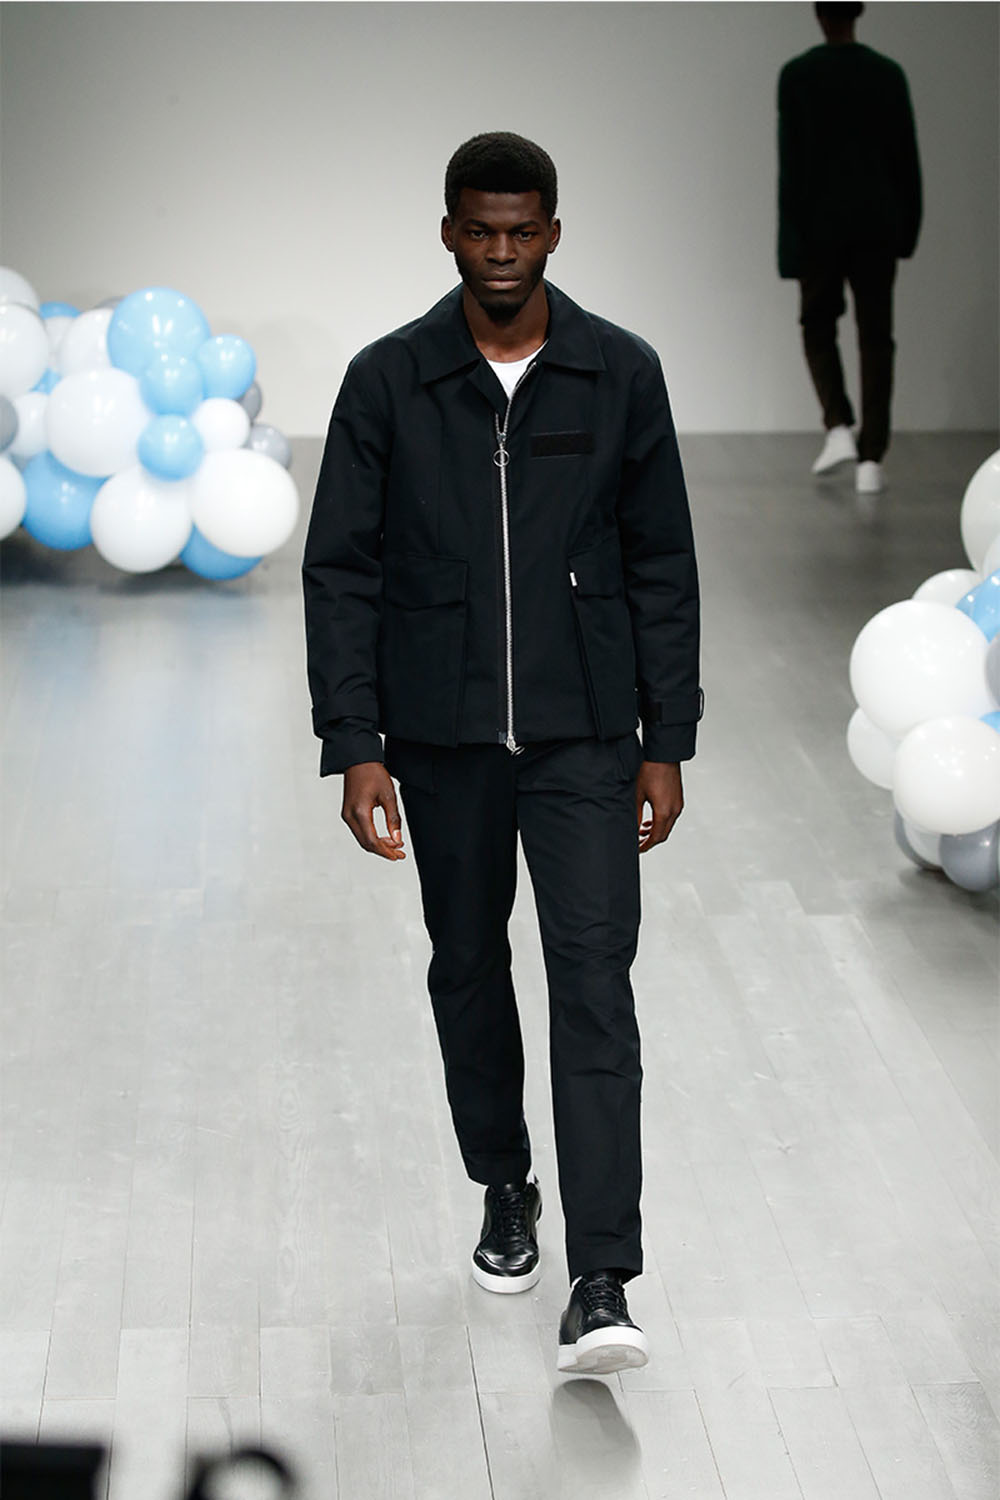 Male model walking the catwalk at (Tinie Tempah's) What We Wear